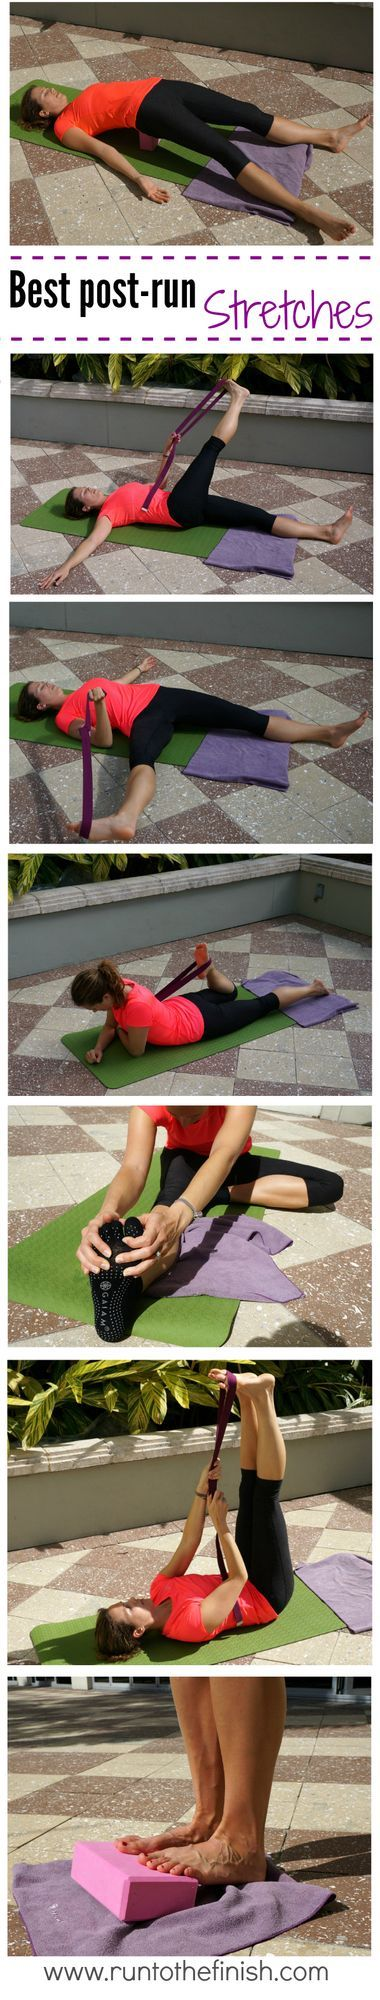 Best post run stretches for IT Band and Hips - Back to basics | Run to the Finish | Bloglovin'